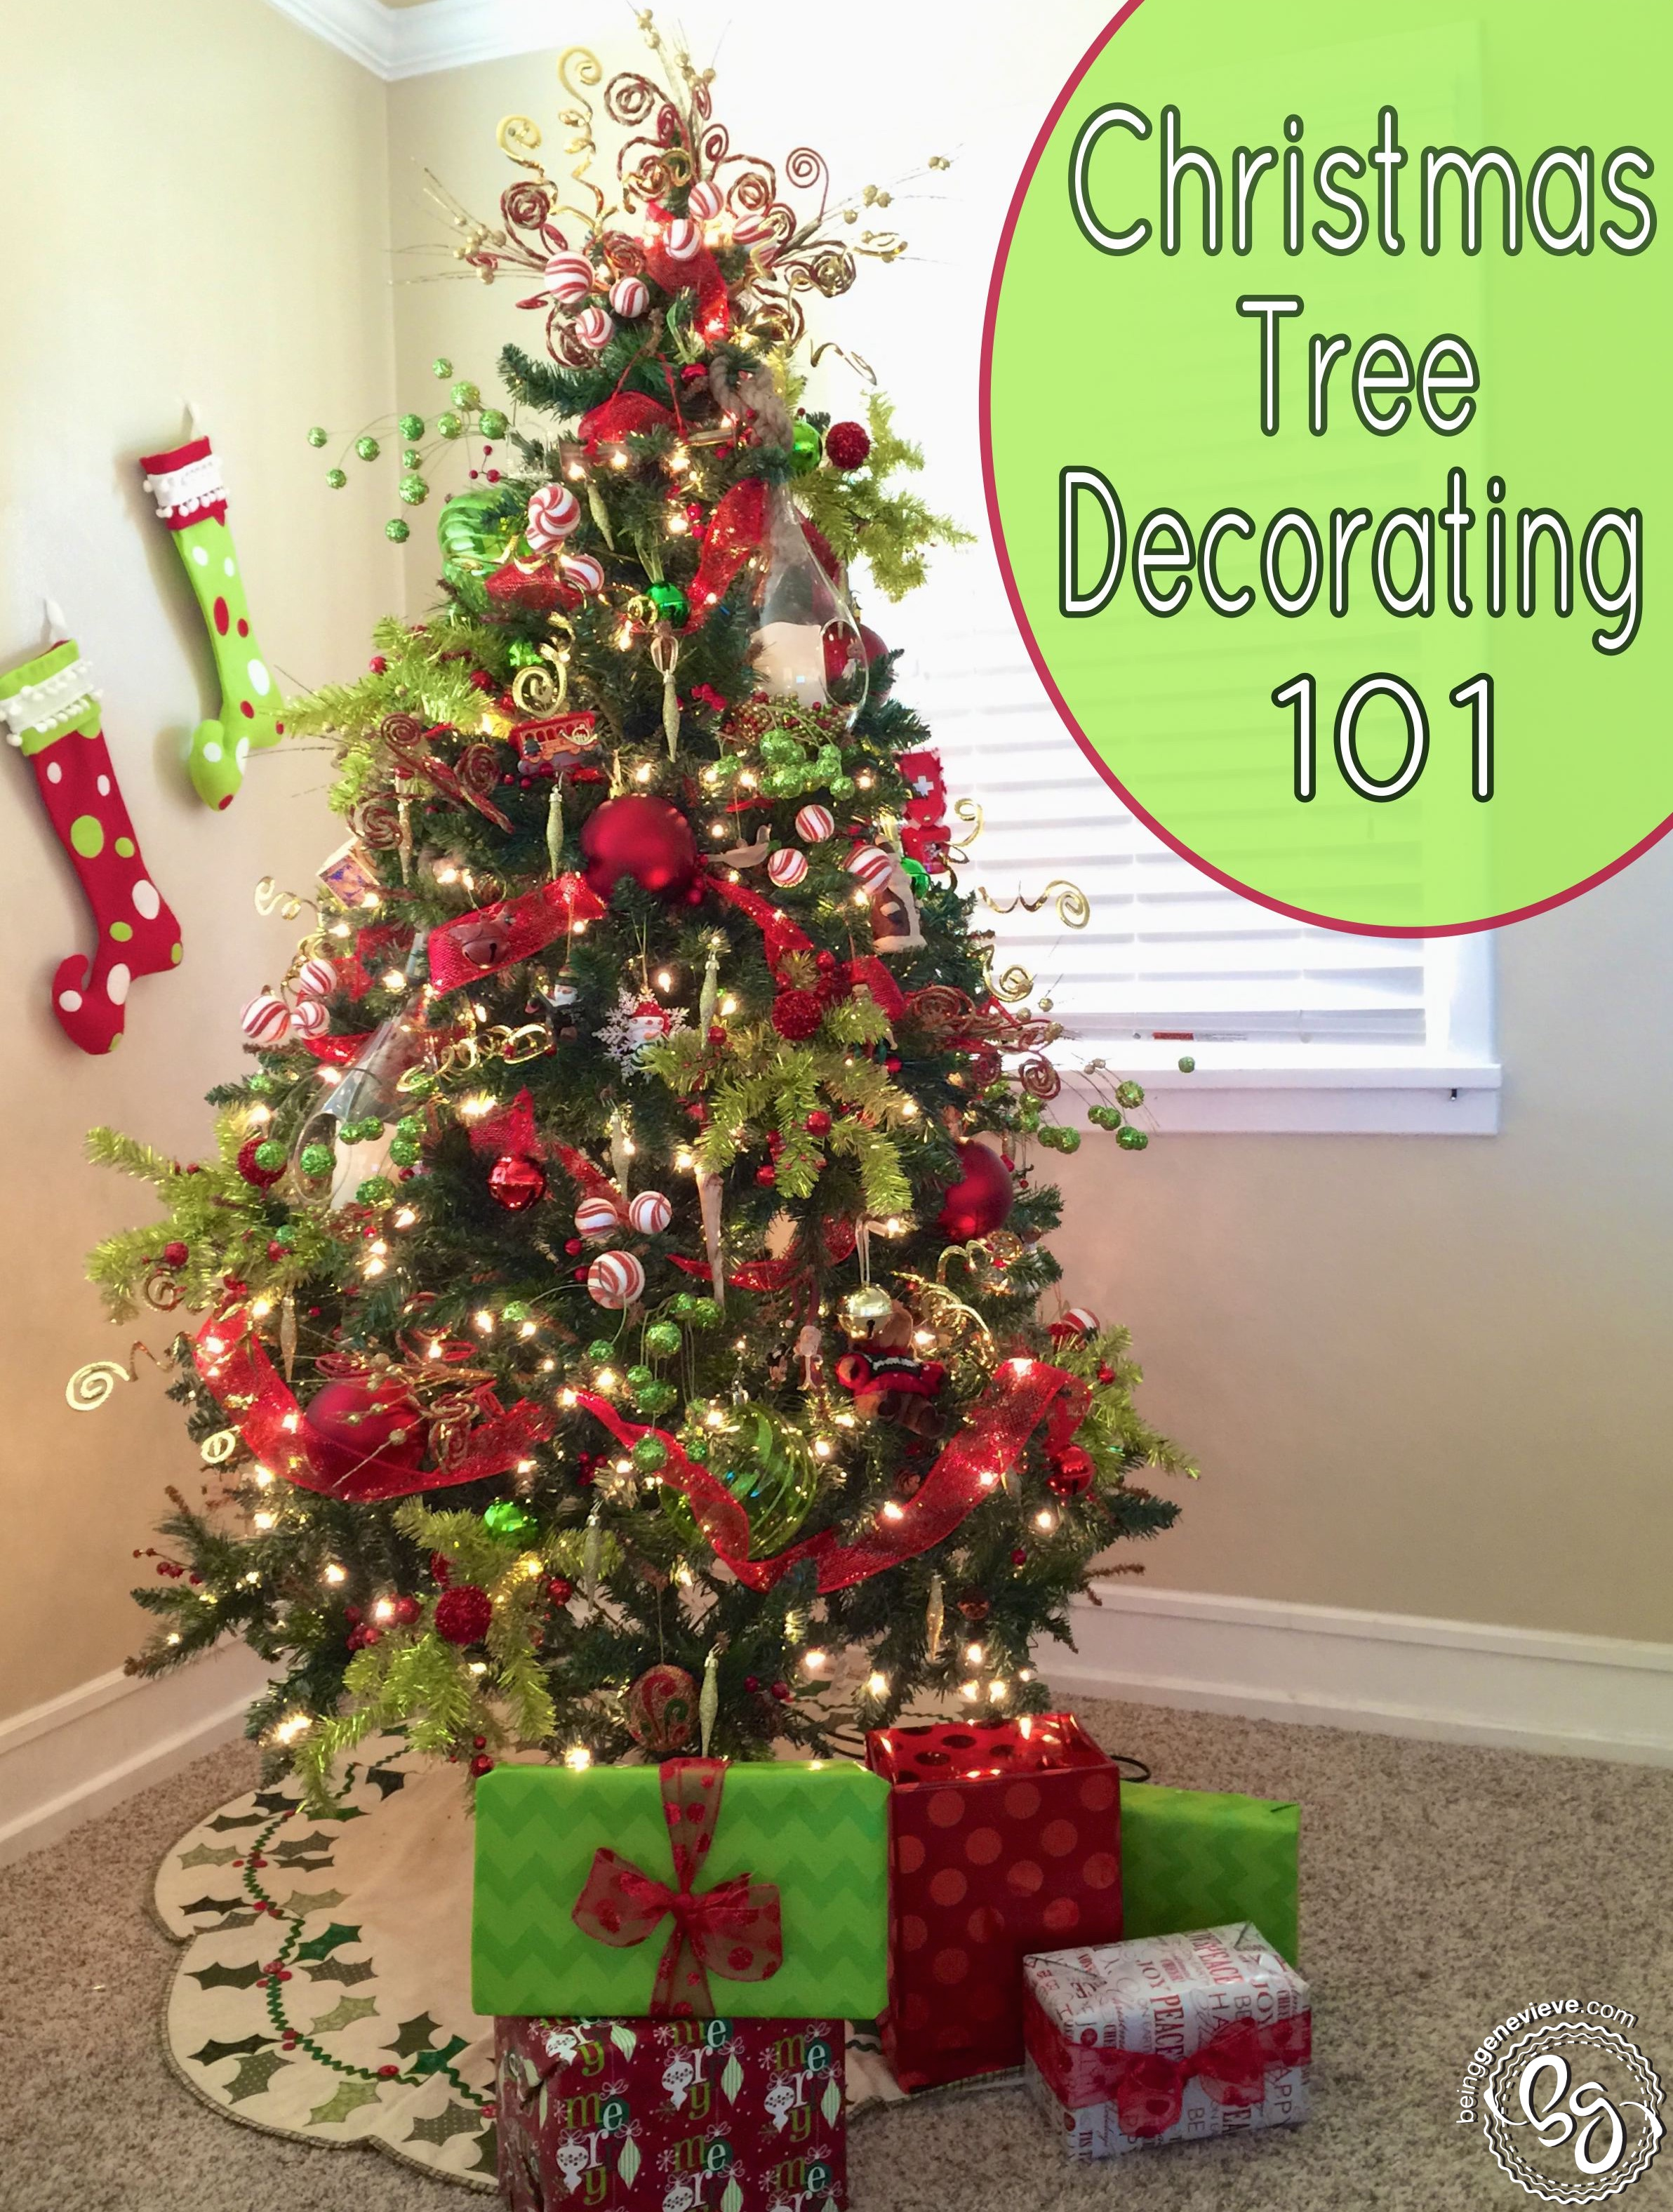 Decorating 101 christmas tree decorating 101 | being genevieve